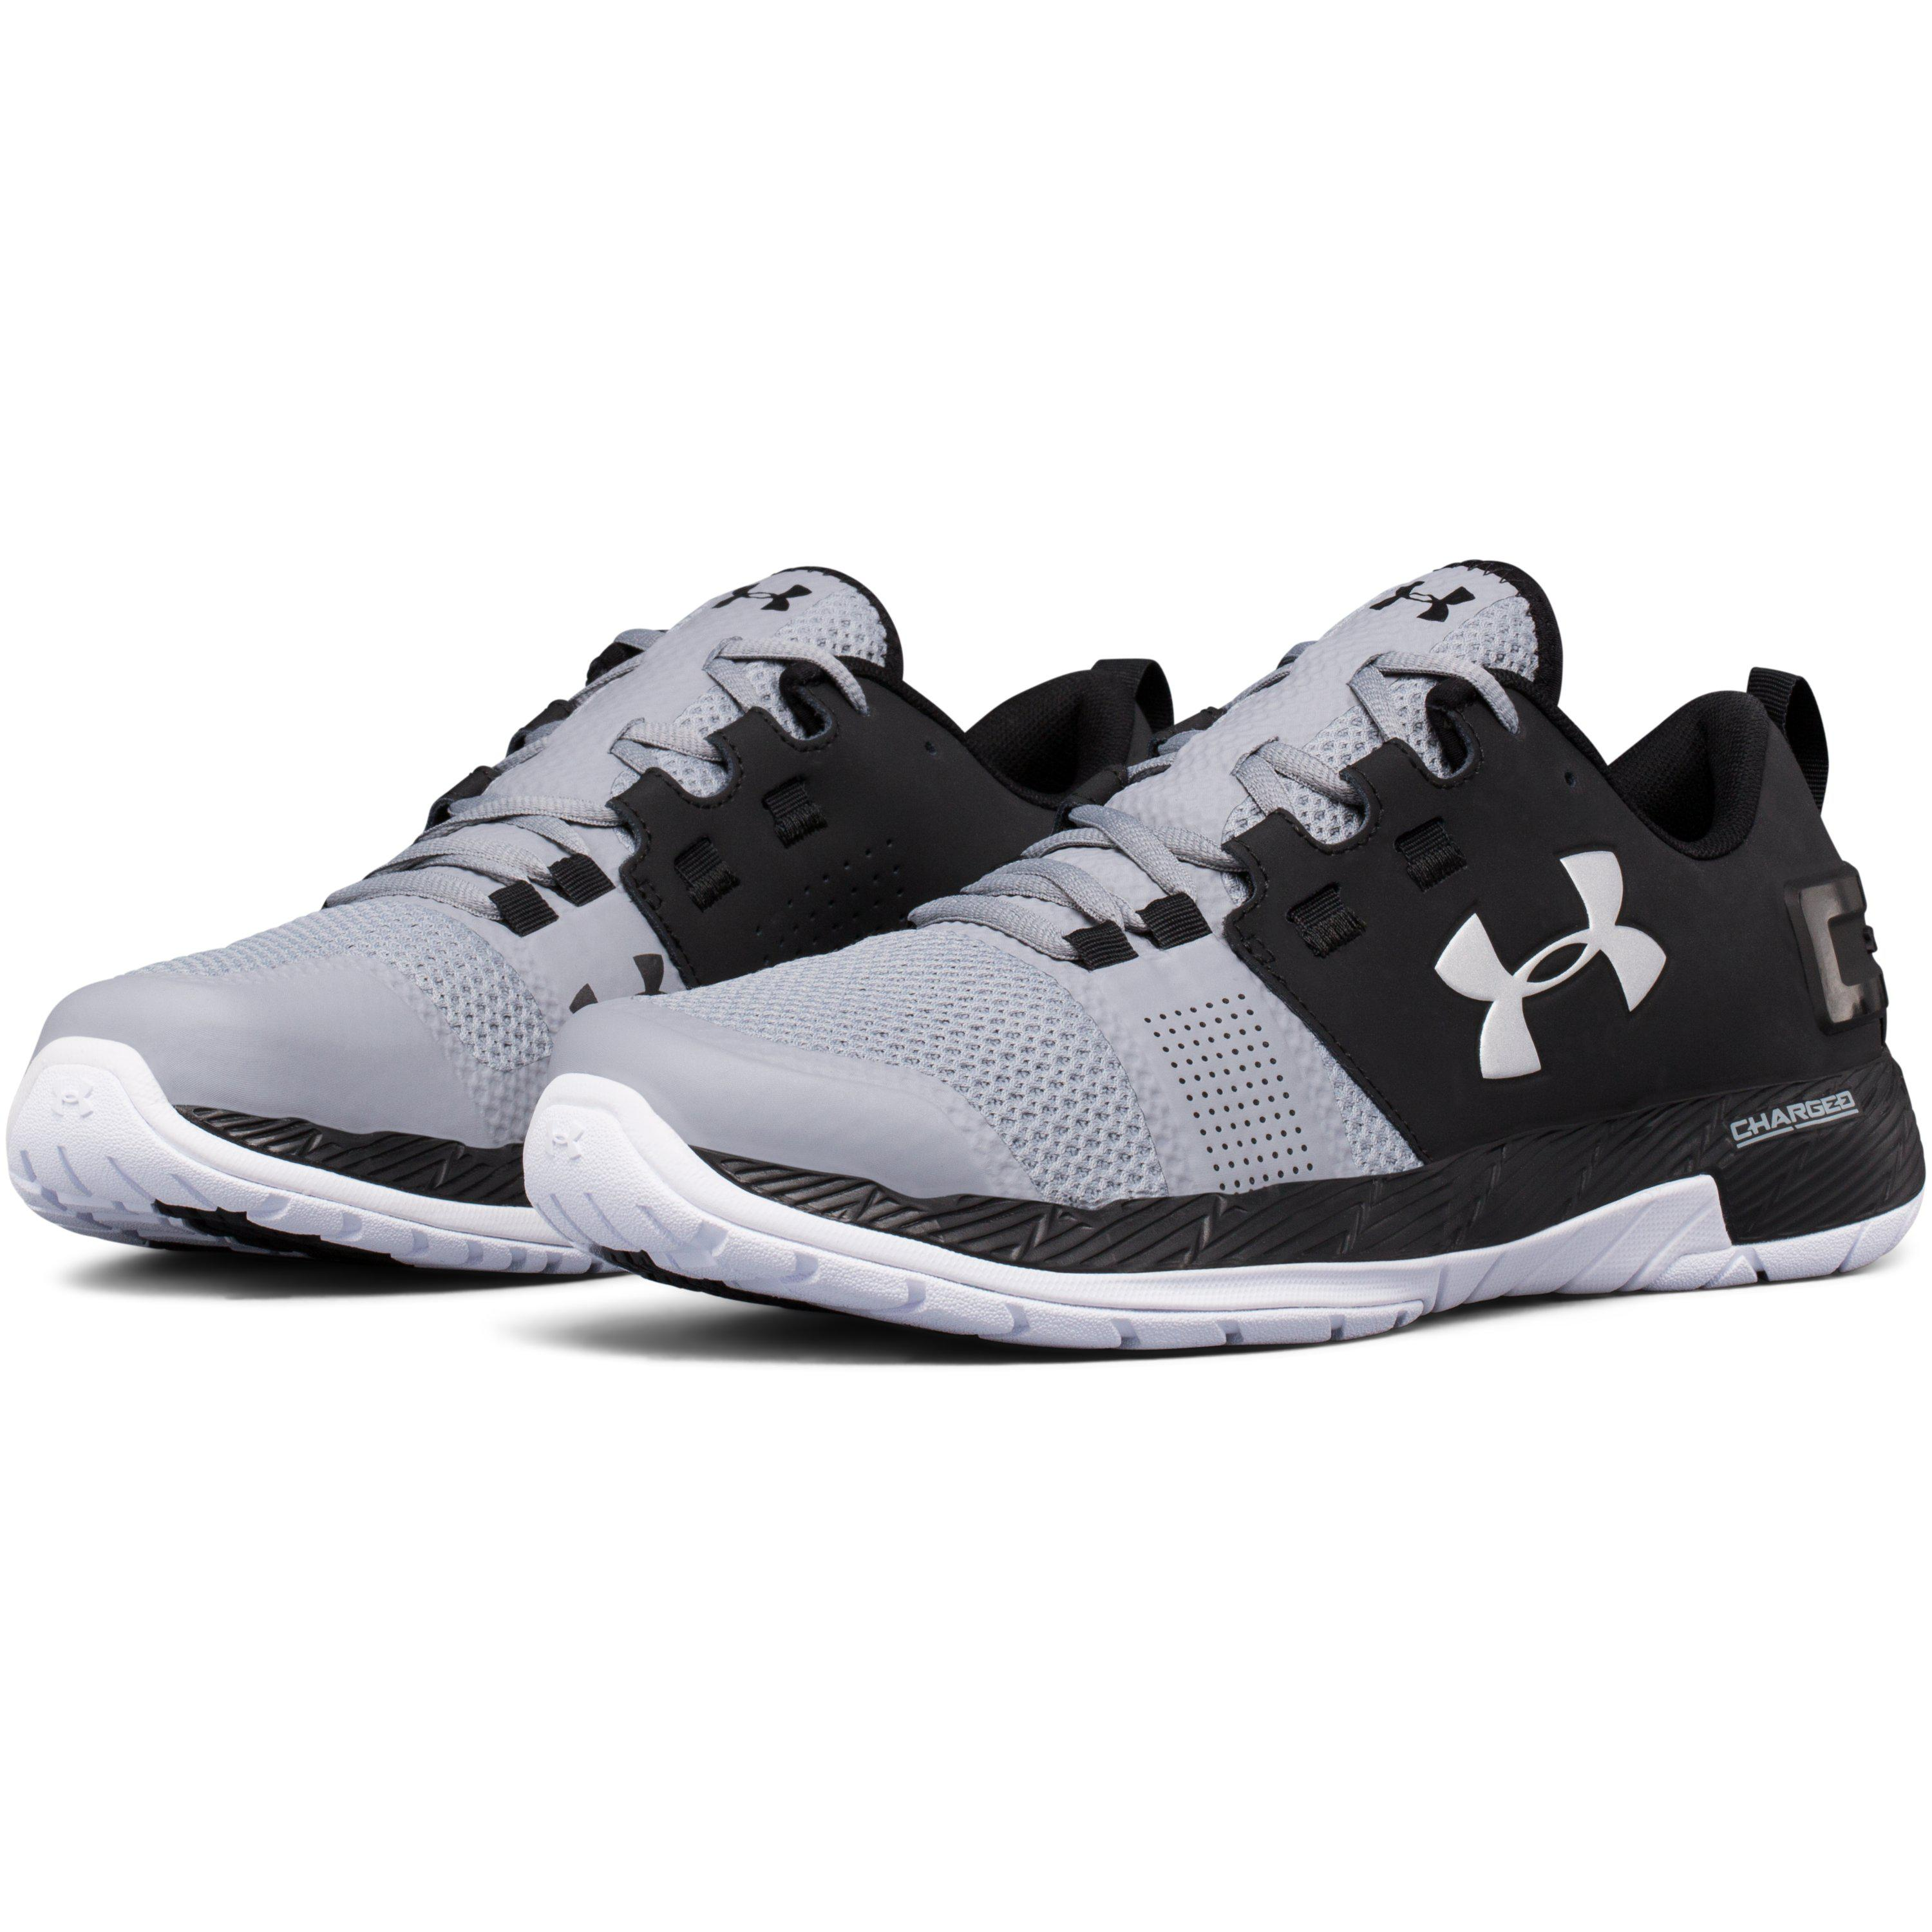 quality design 8d0c1 86b15 Under Armour Black Men's Ua Commit Training Shoes for men